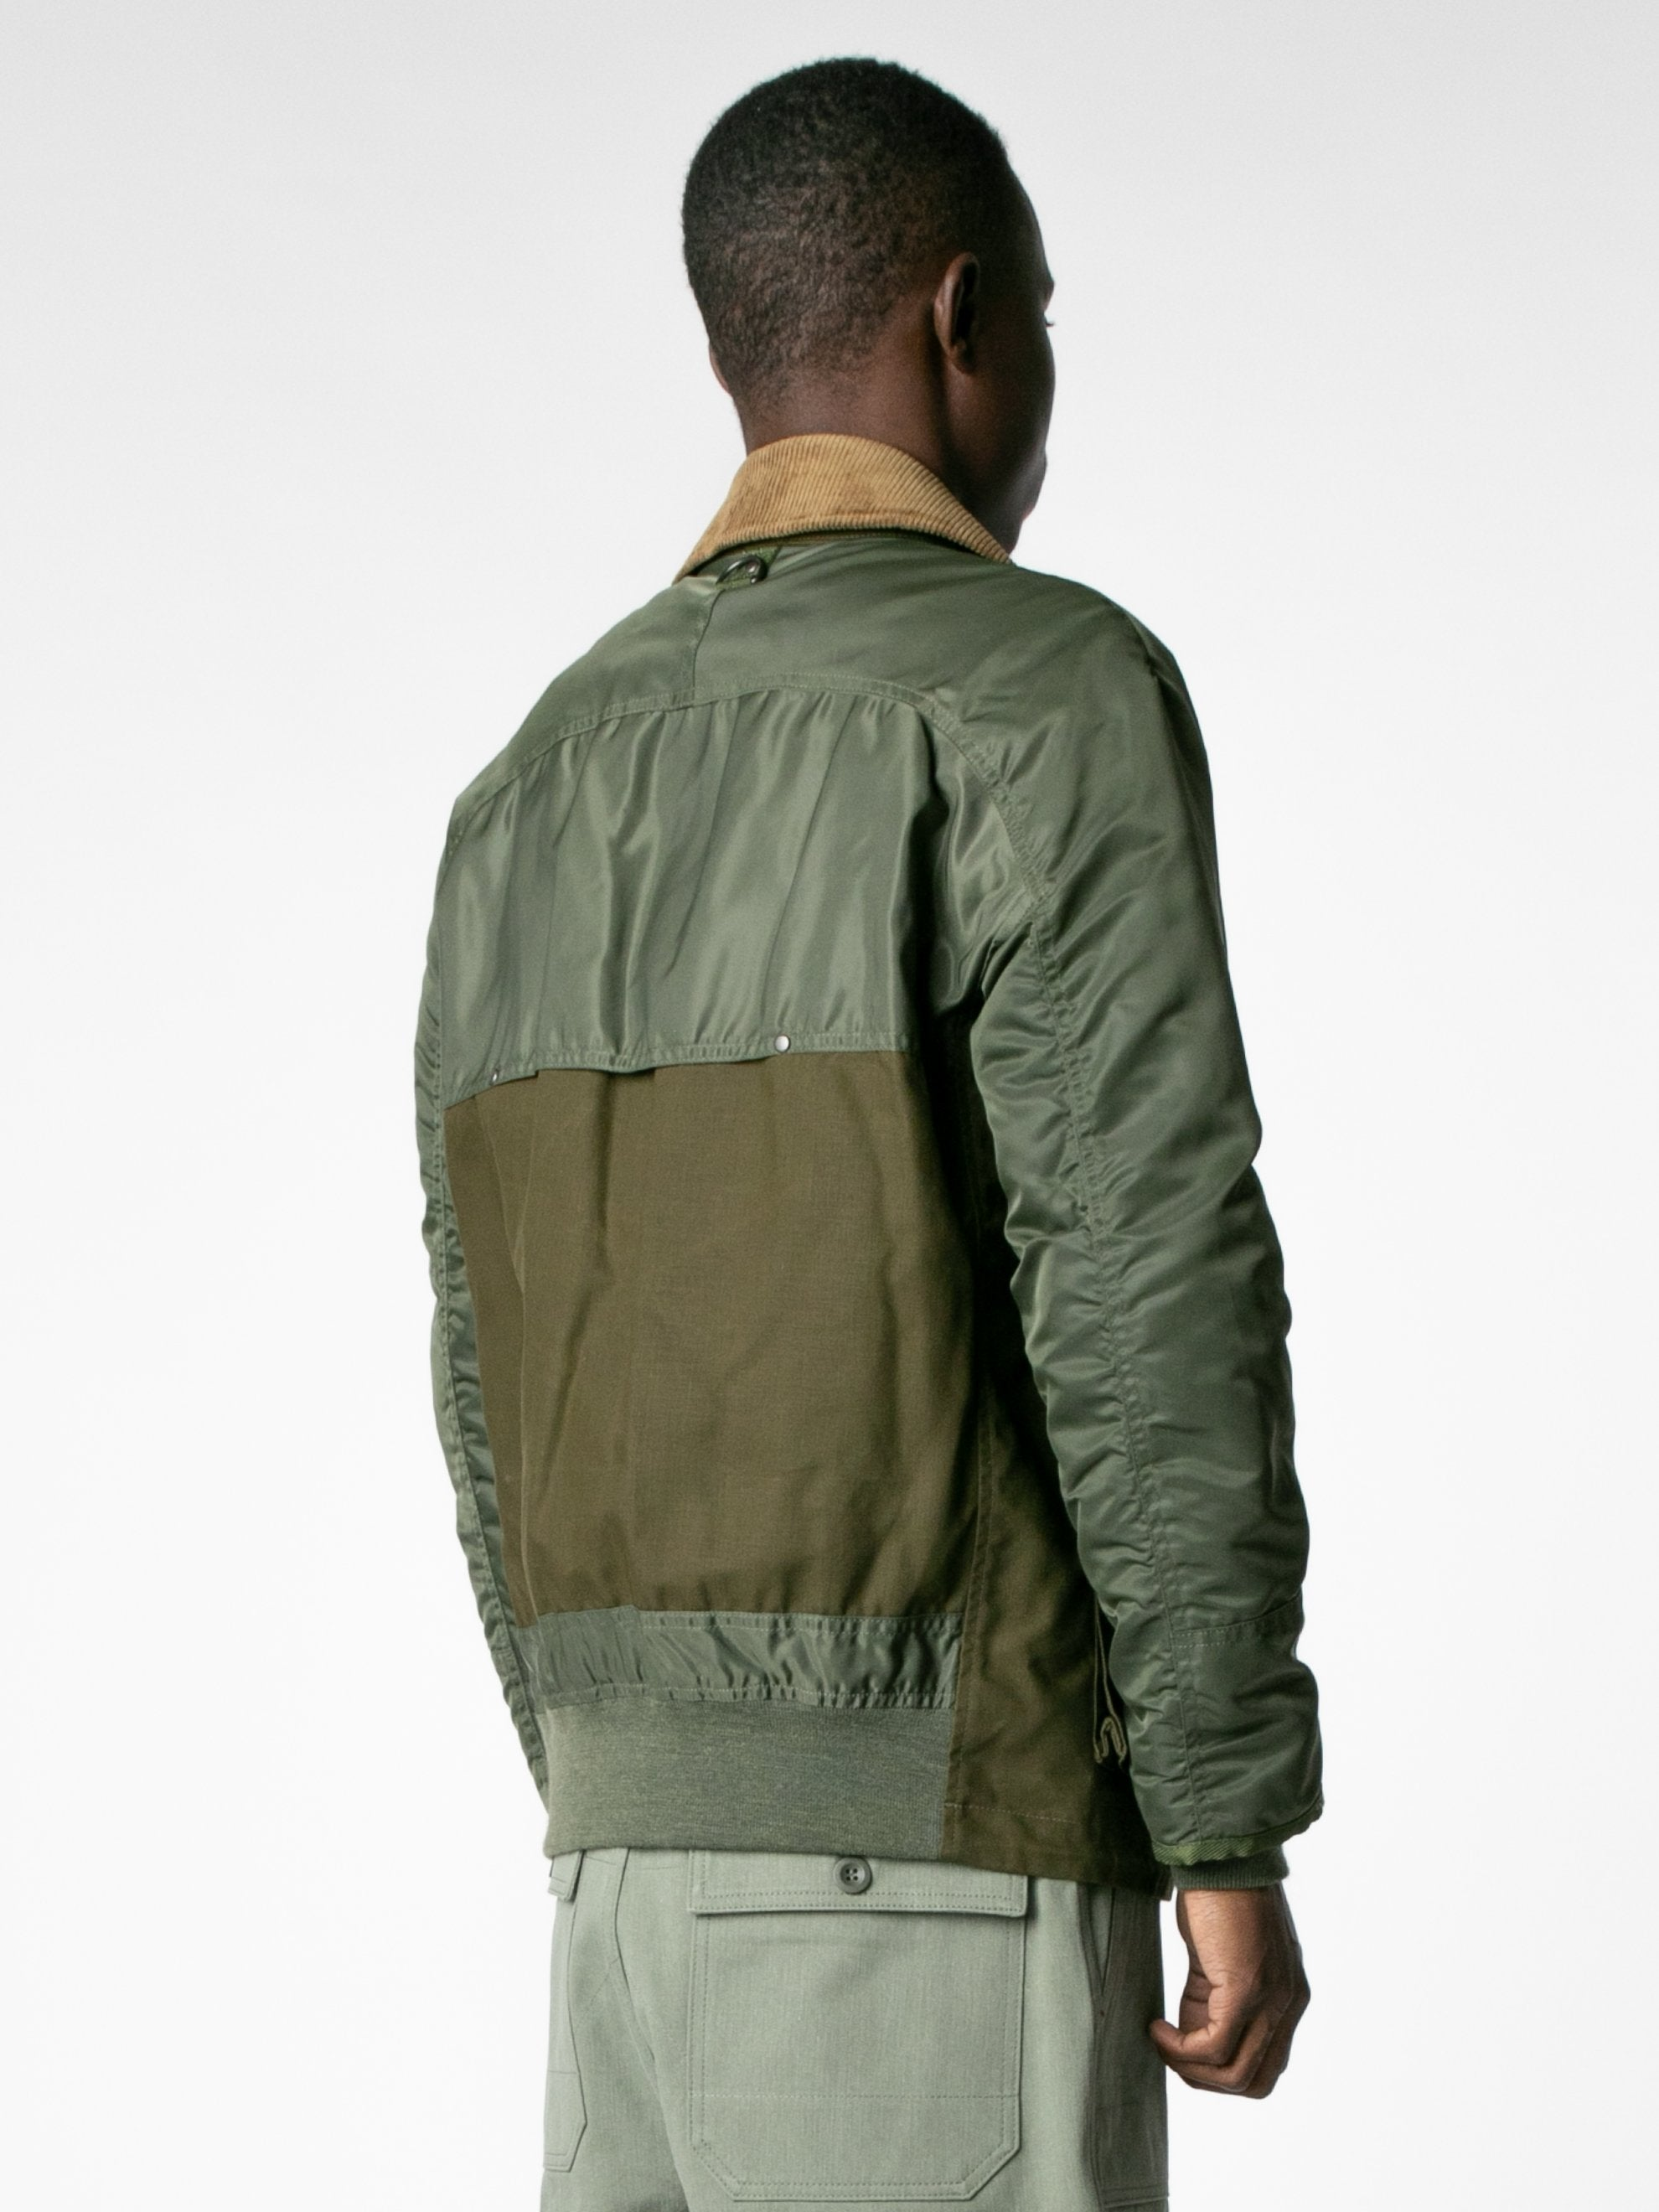 Brown / Olive Hybrid MA-1 Field Coat 5